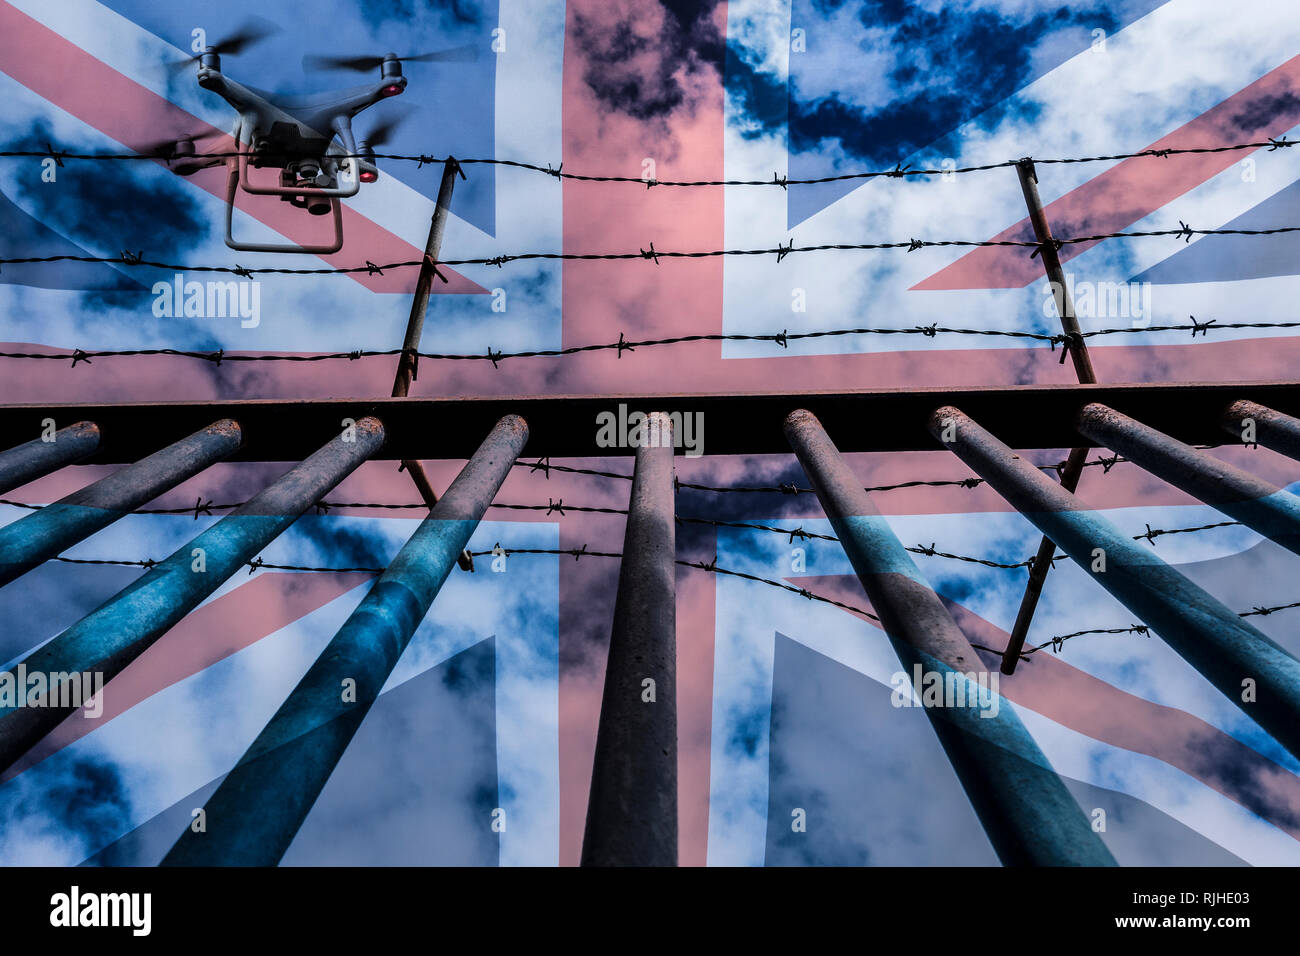 Drone flying over steel barred fence topped with barbed wire. Concept image: drugs in prisons, surveillance, spying, border control... - Stock Image